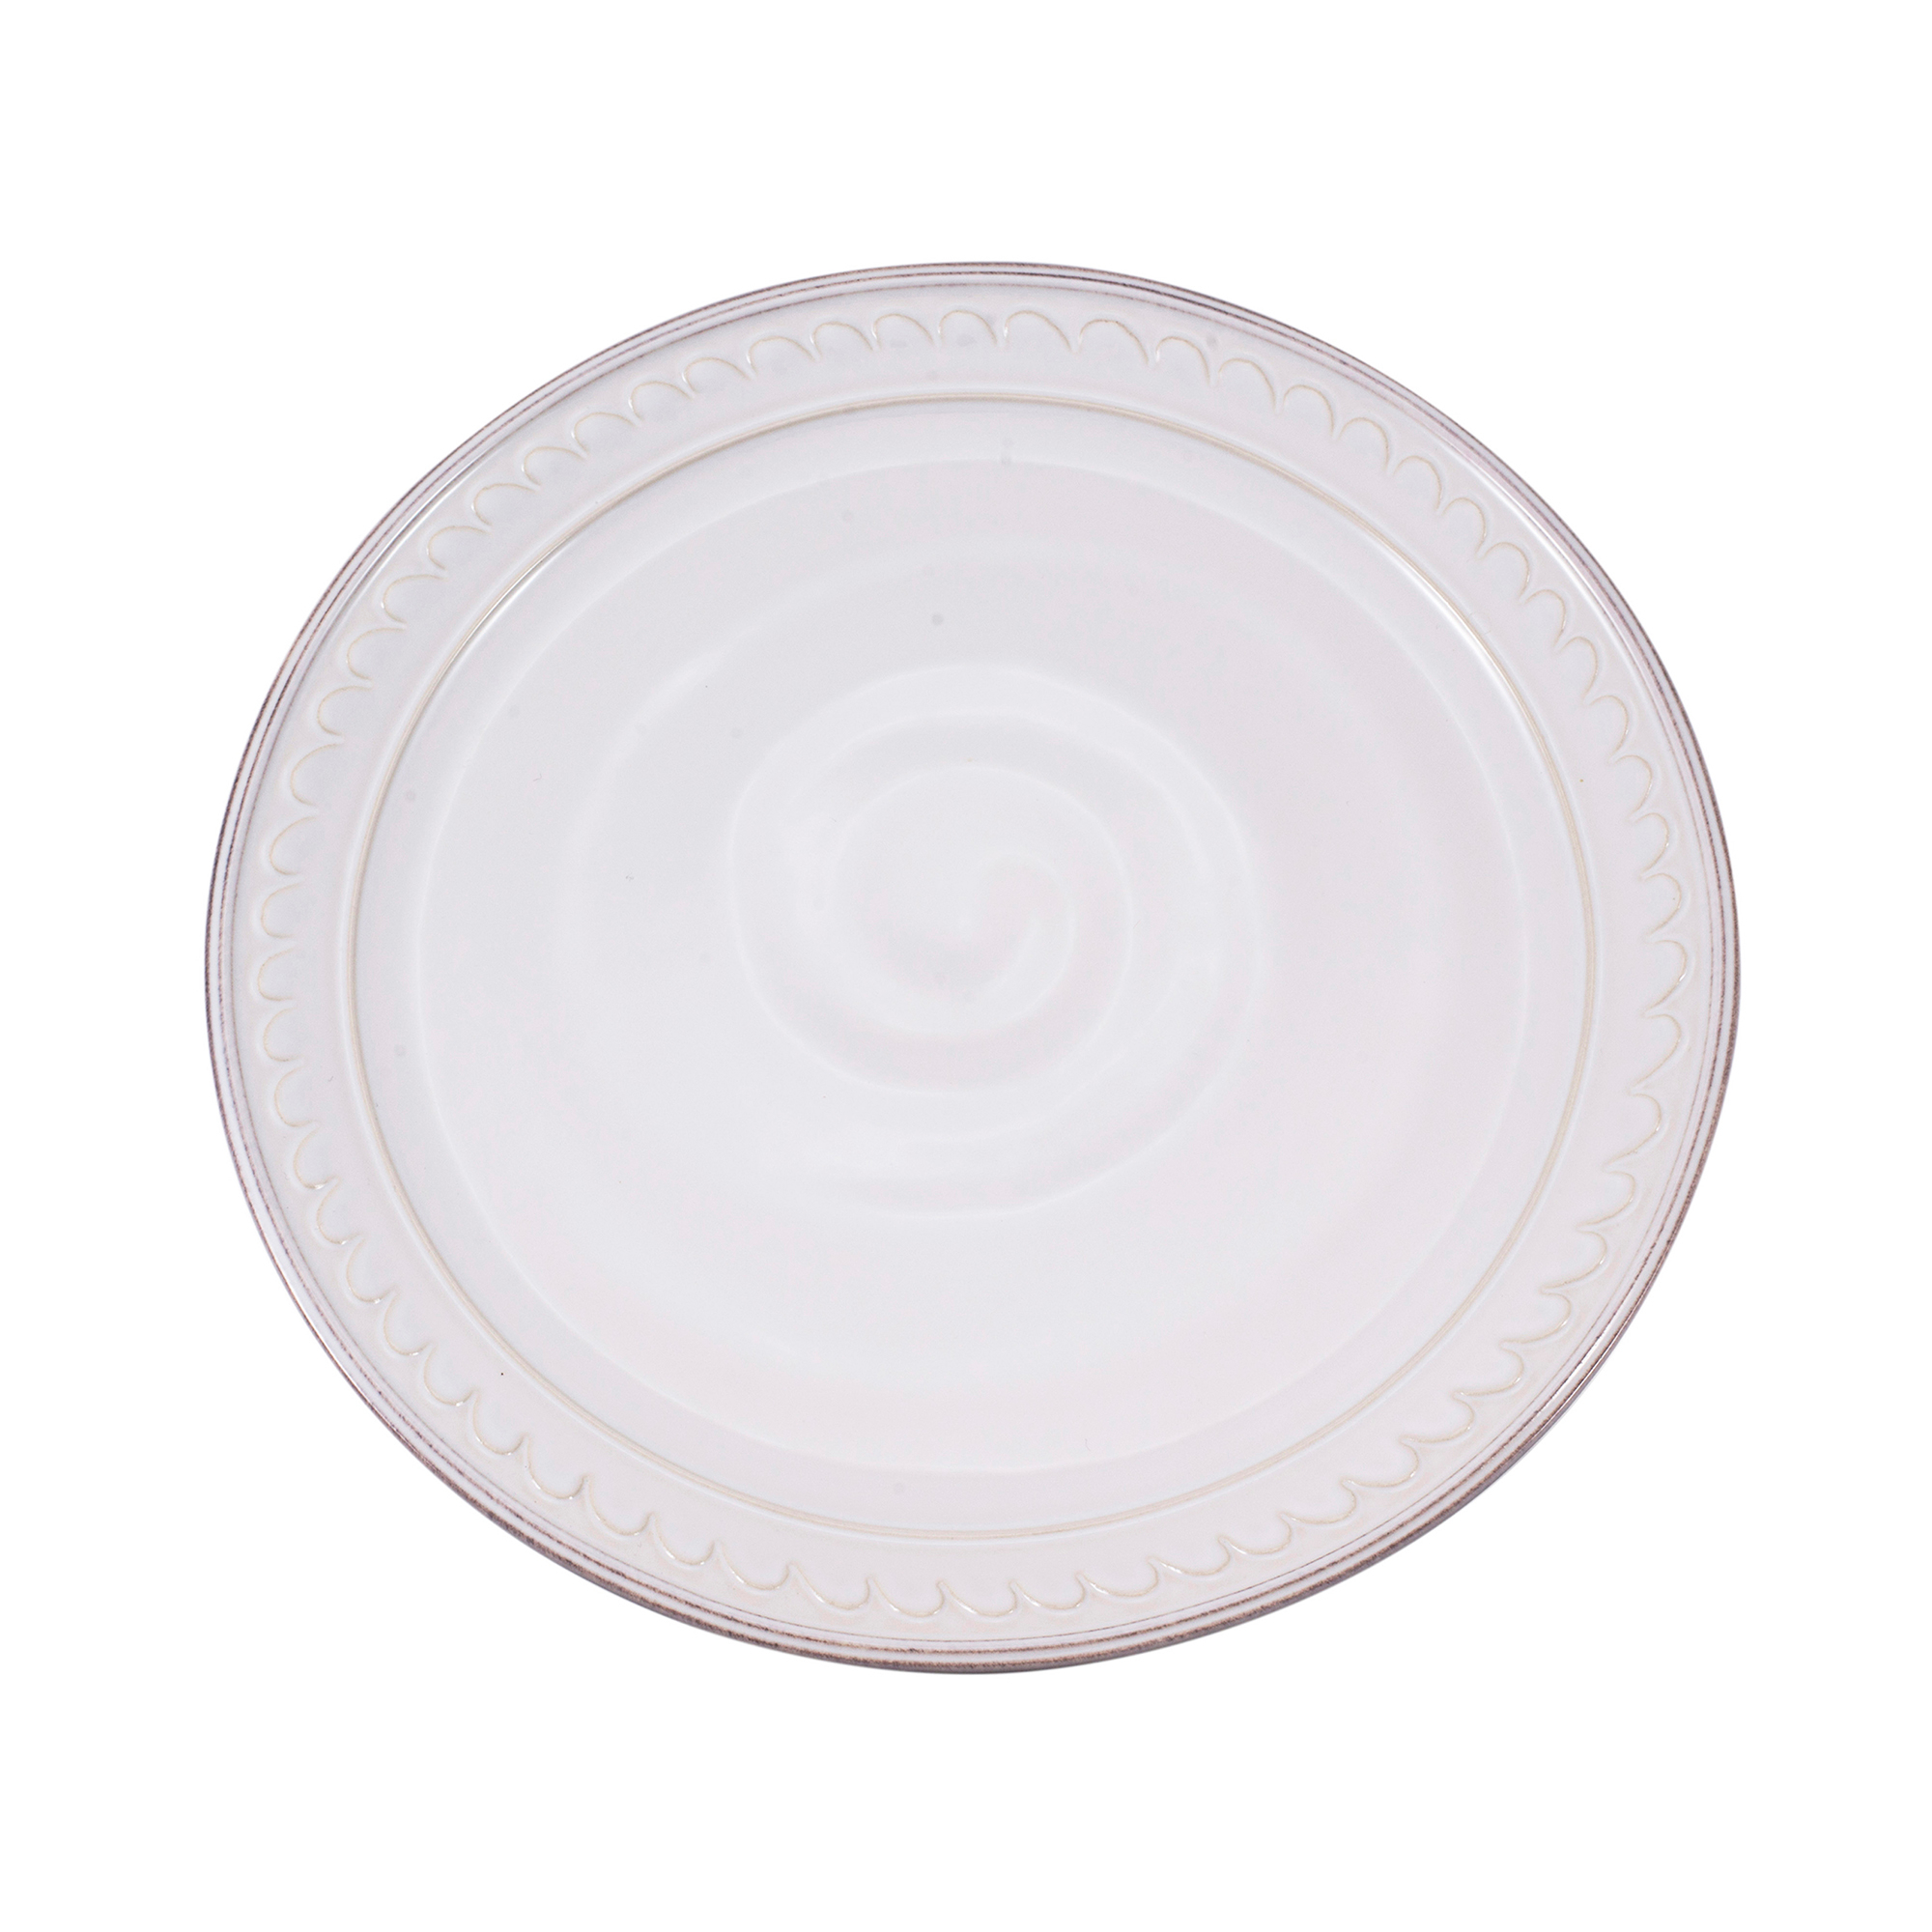 Simon Pearce Hartland Wave Dinner Plate